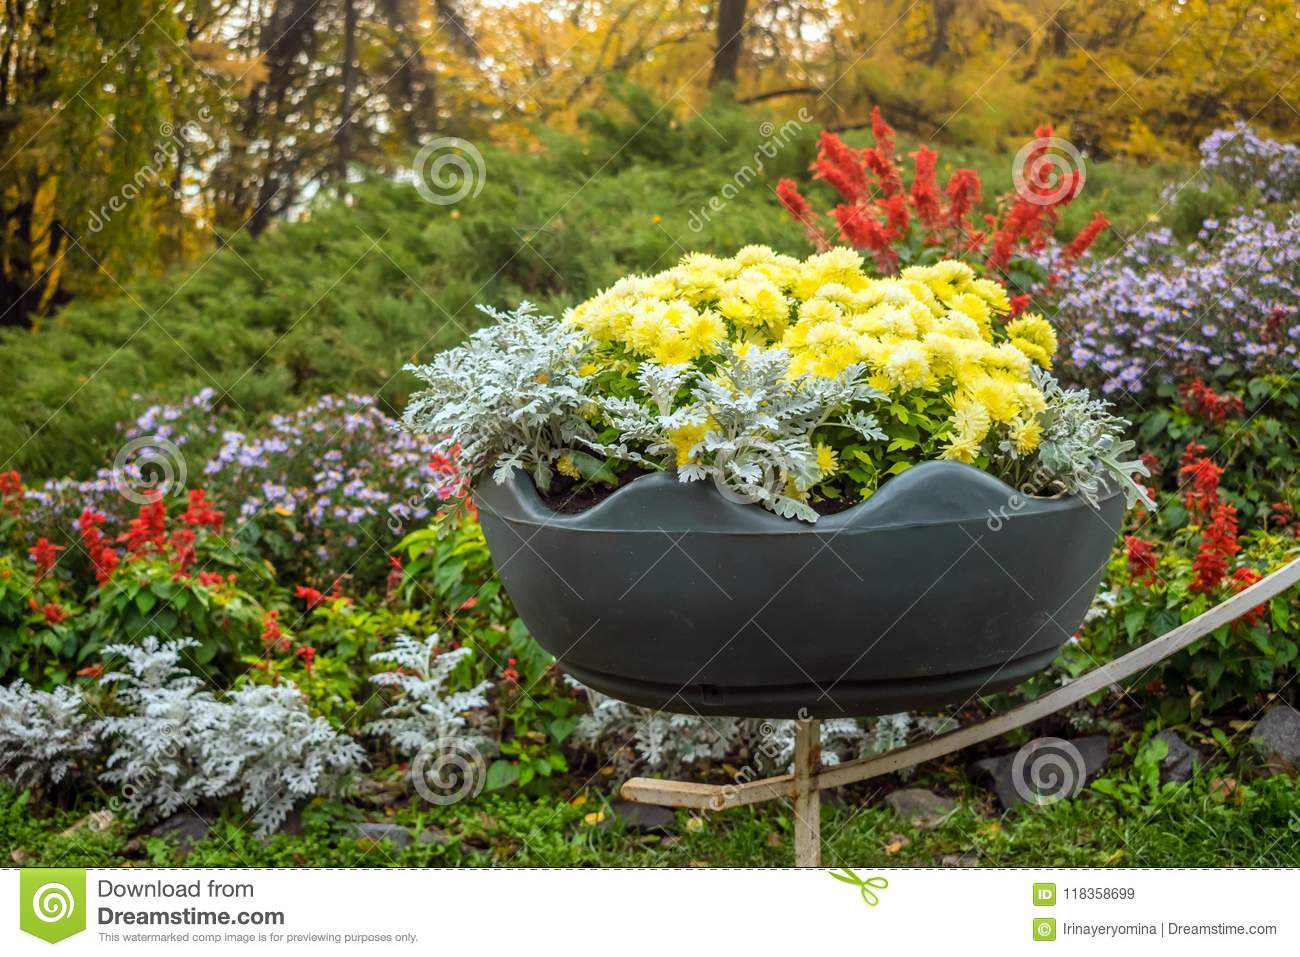 Bright yellow varietal chrysanthemums in a big pot with background of a bright flowerbed in park. Floral decor of chrysanthemums